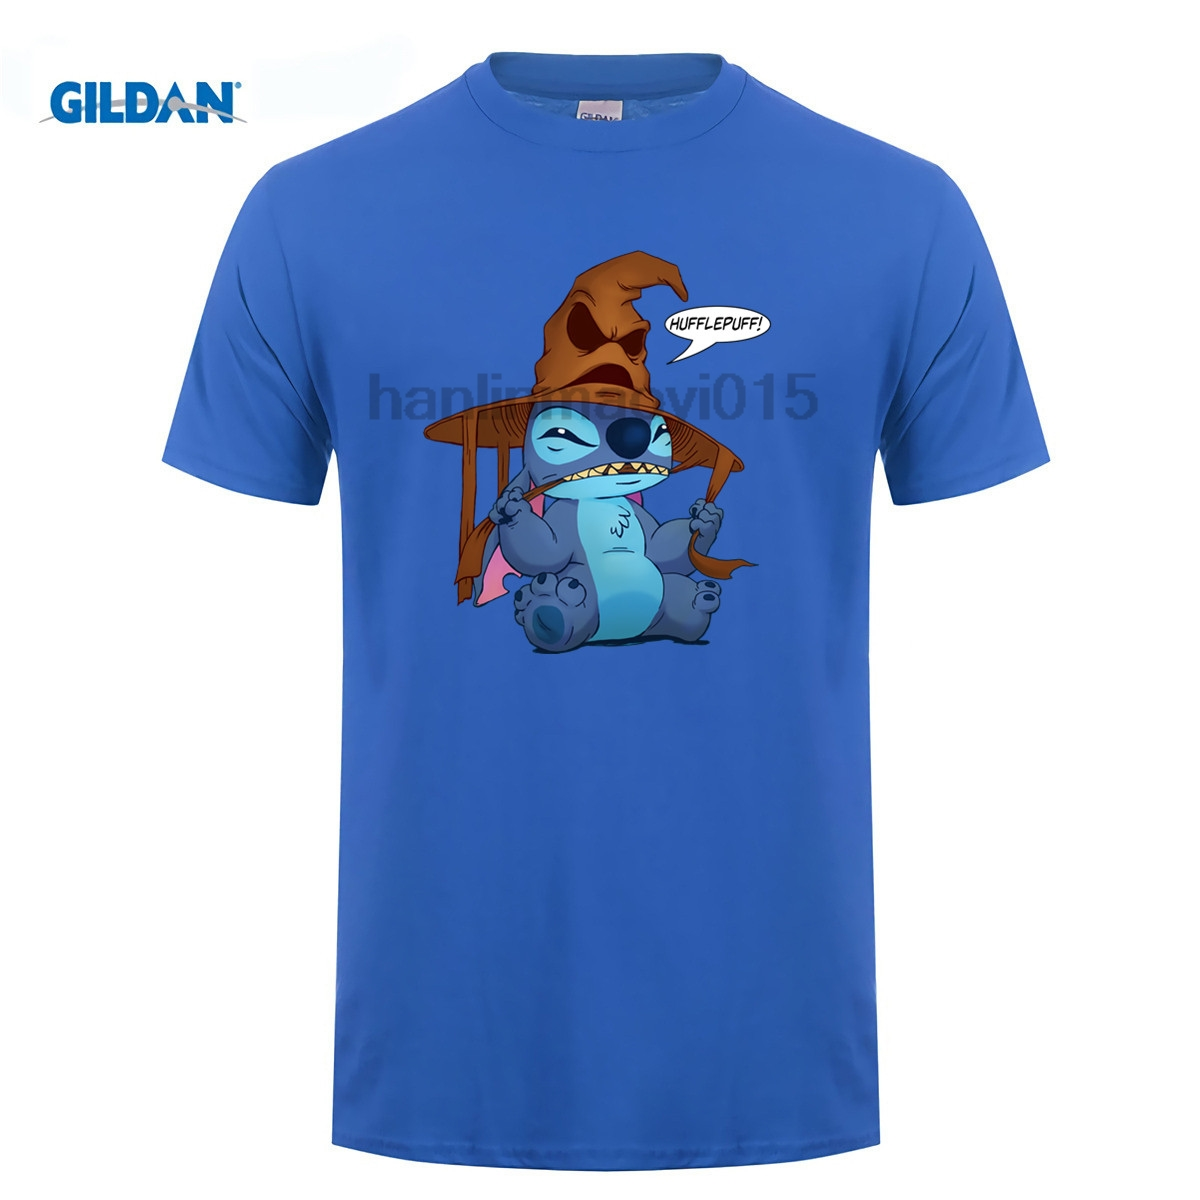 GILDAN 100% Cotton O-neck printed T-shirt Sorting a Stitch T-Shirt ...